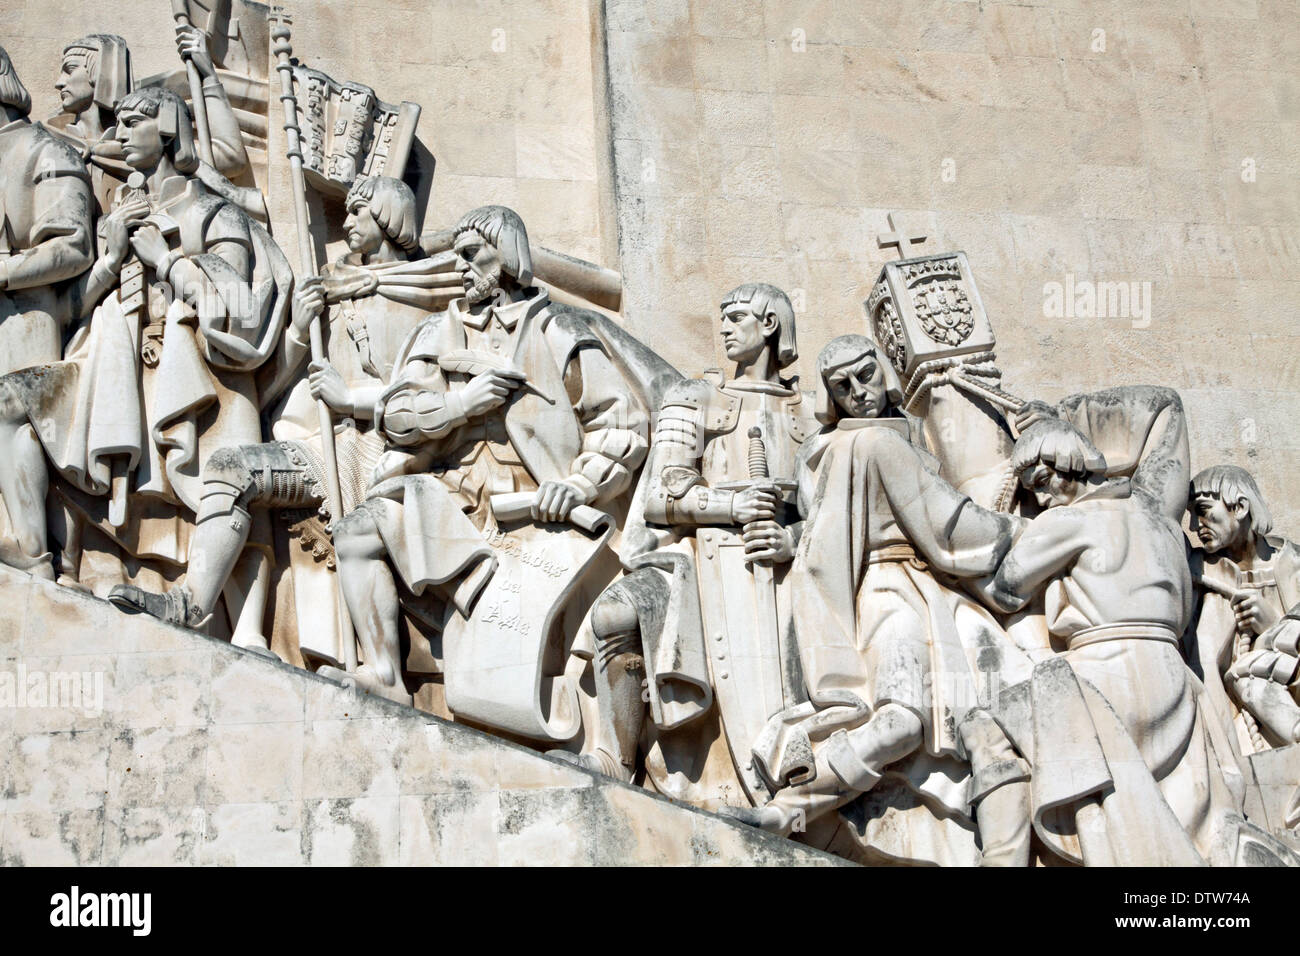 Padrão dos Descobrimentos, a monument in honor of the Portuguese Age of Discoveries during the 15th and 16th centuries, Lisbon. - Stock Image